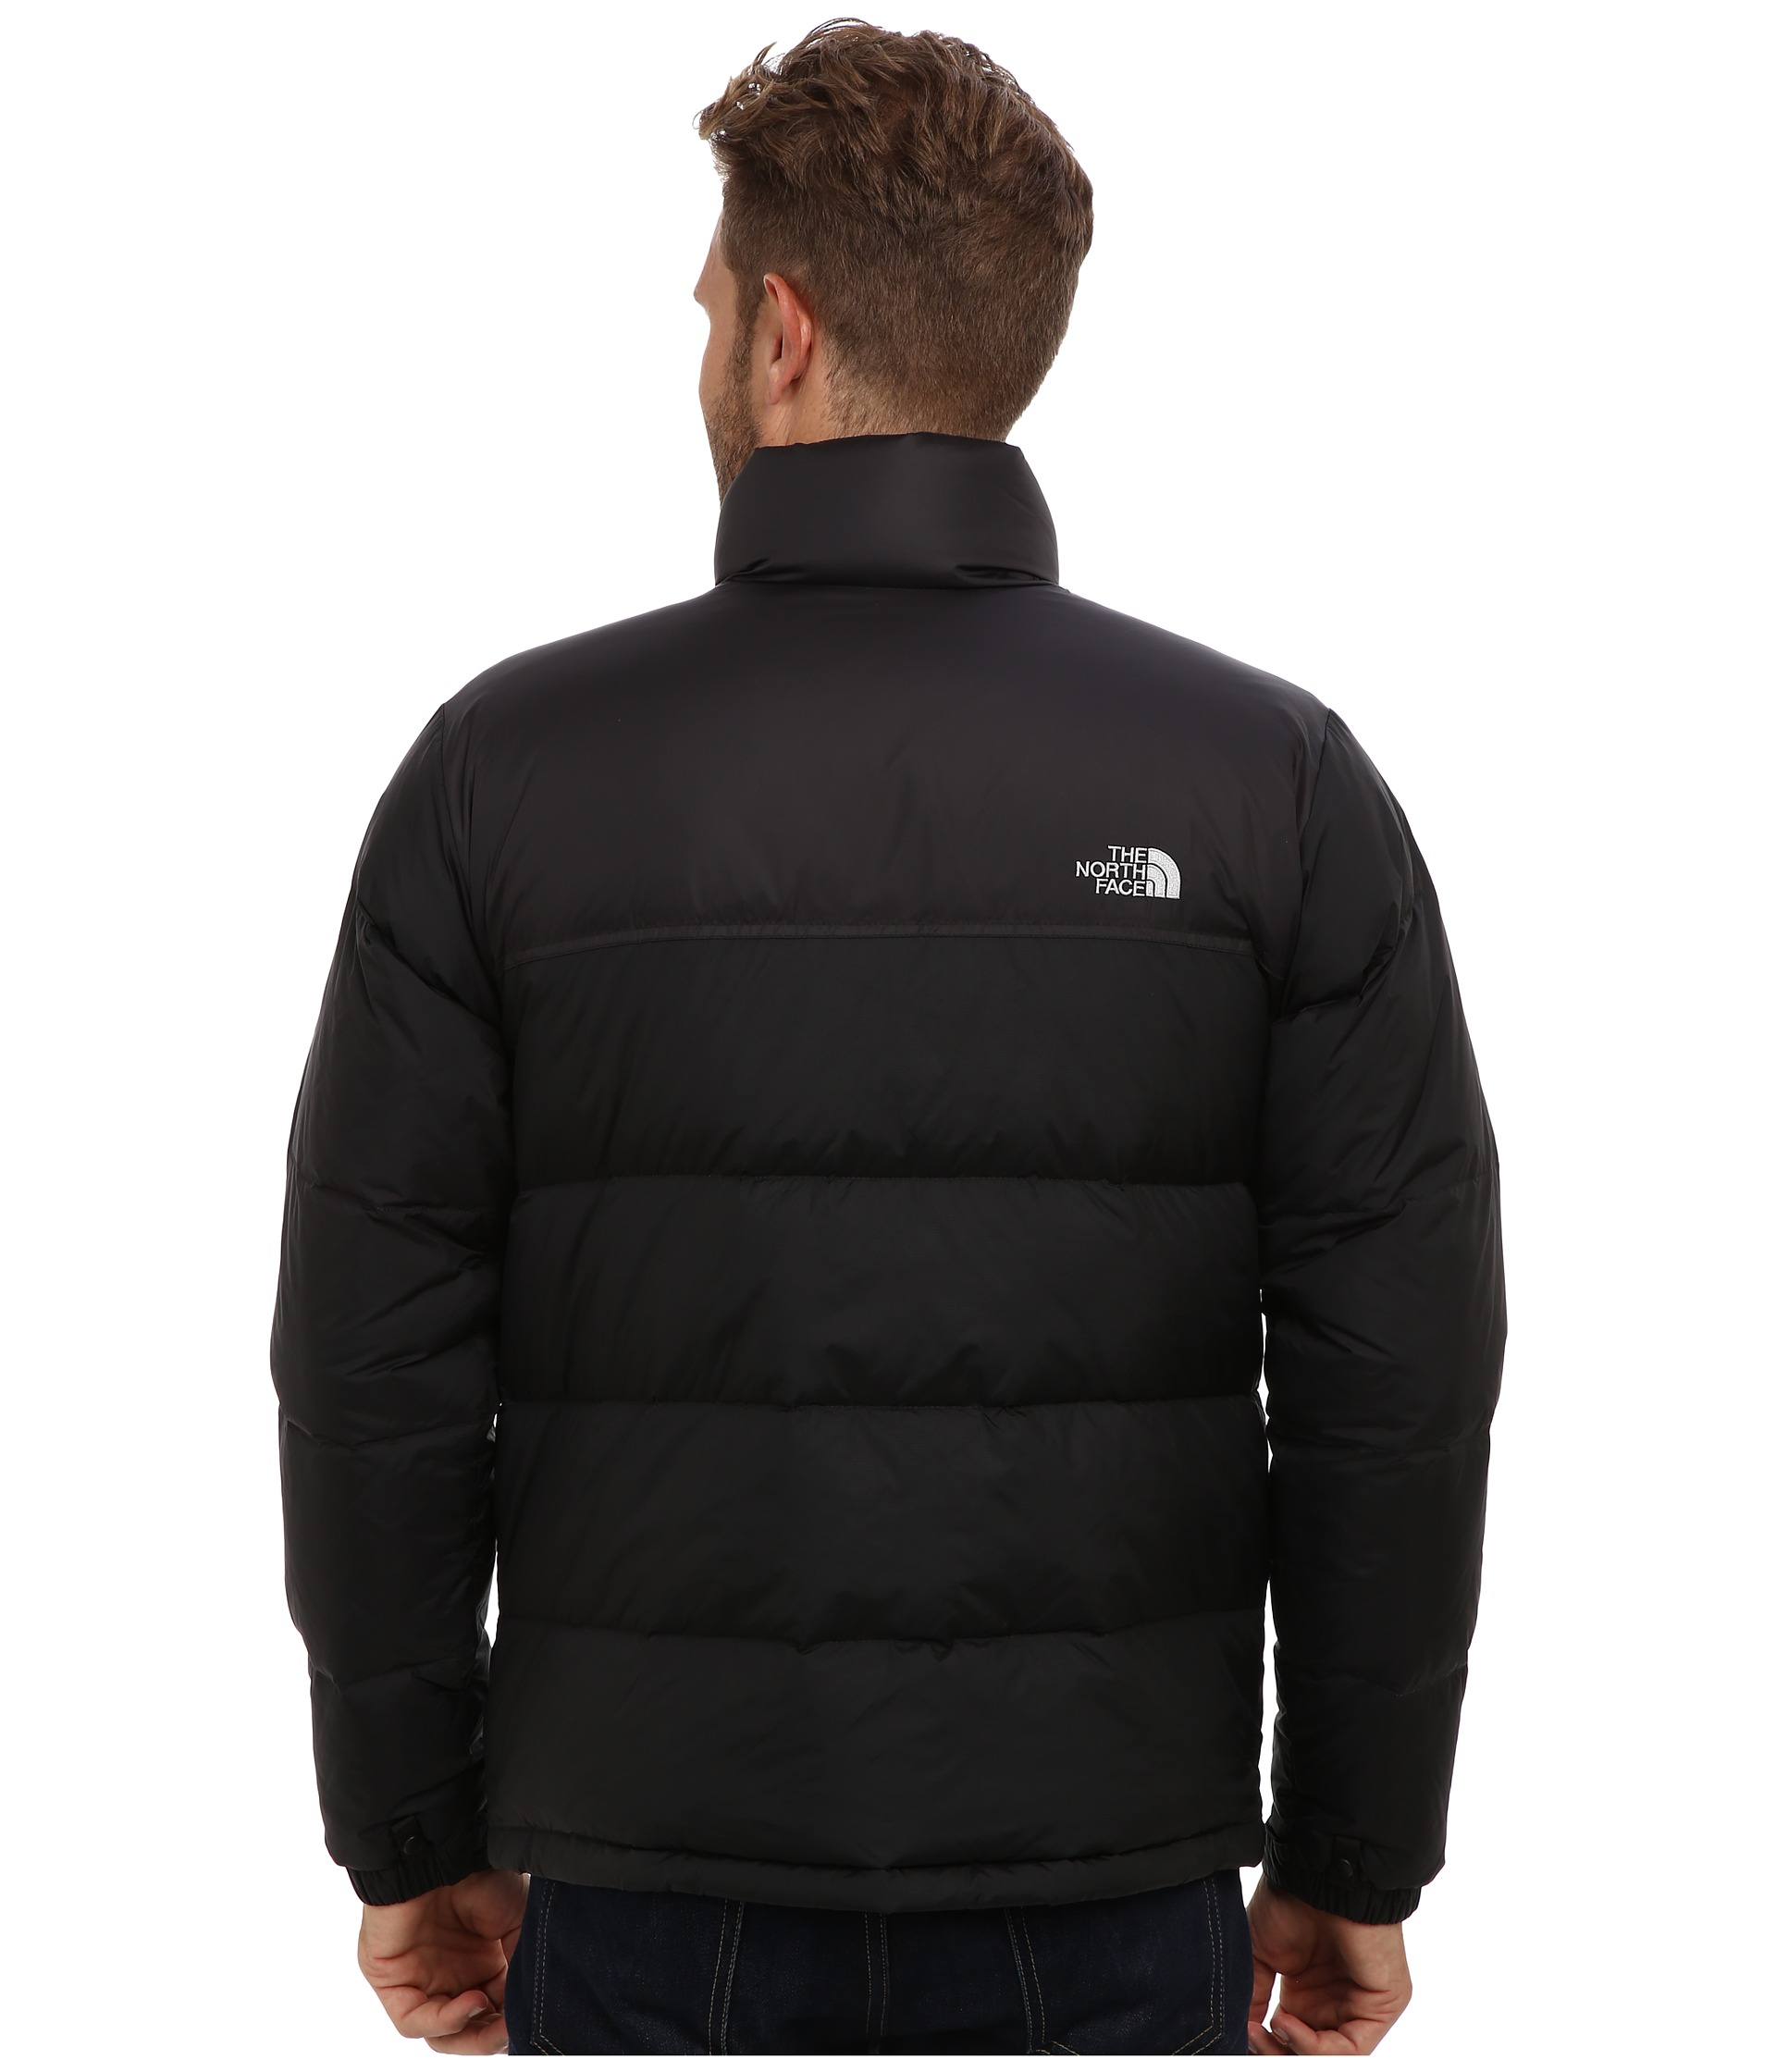 the north face nuptse jacket free shipping both ways. Black Bedroom Furniture Sets. Home Design Ideas